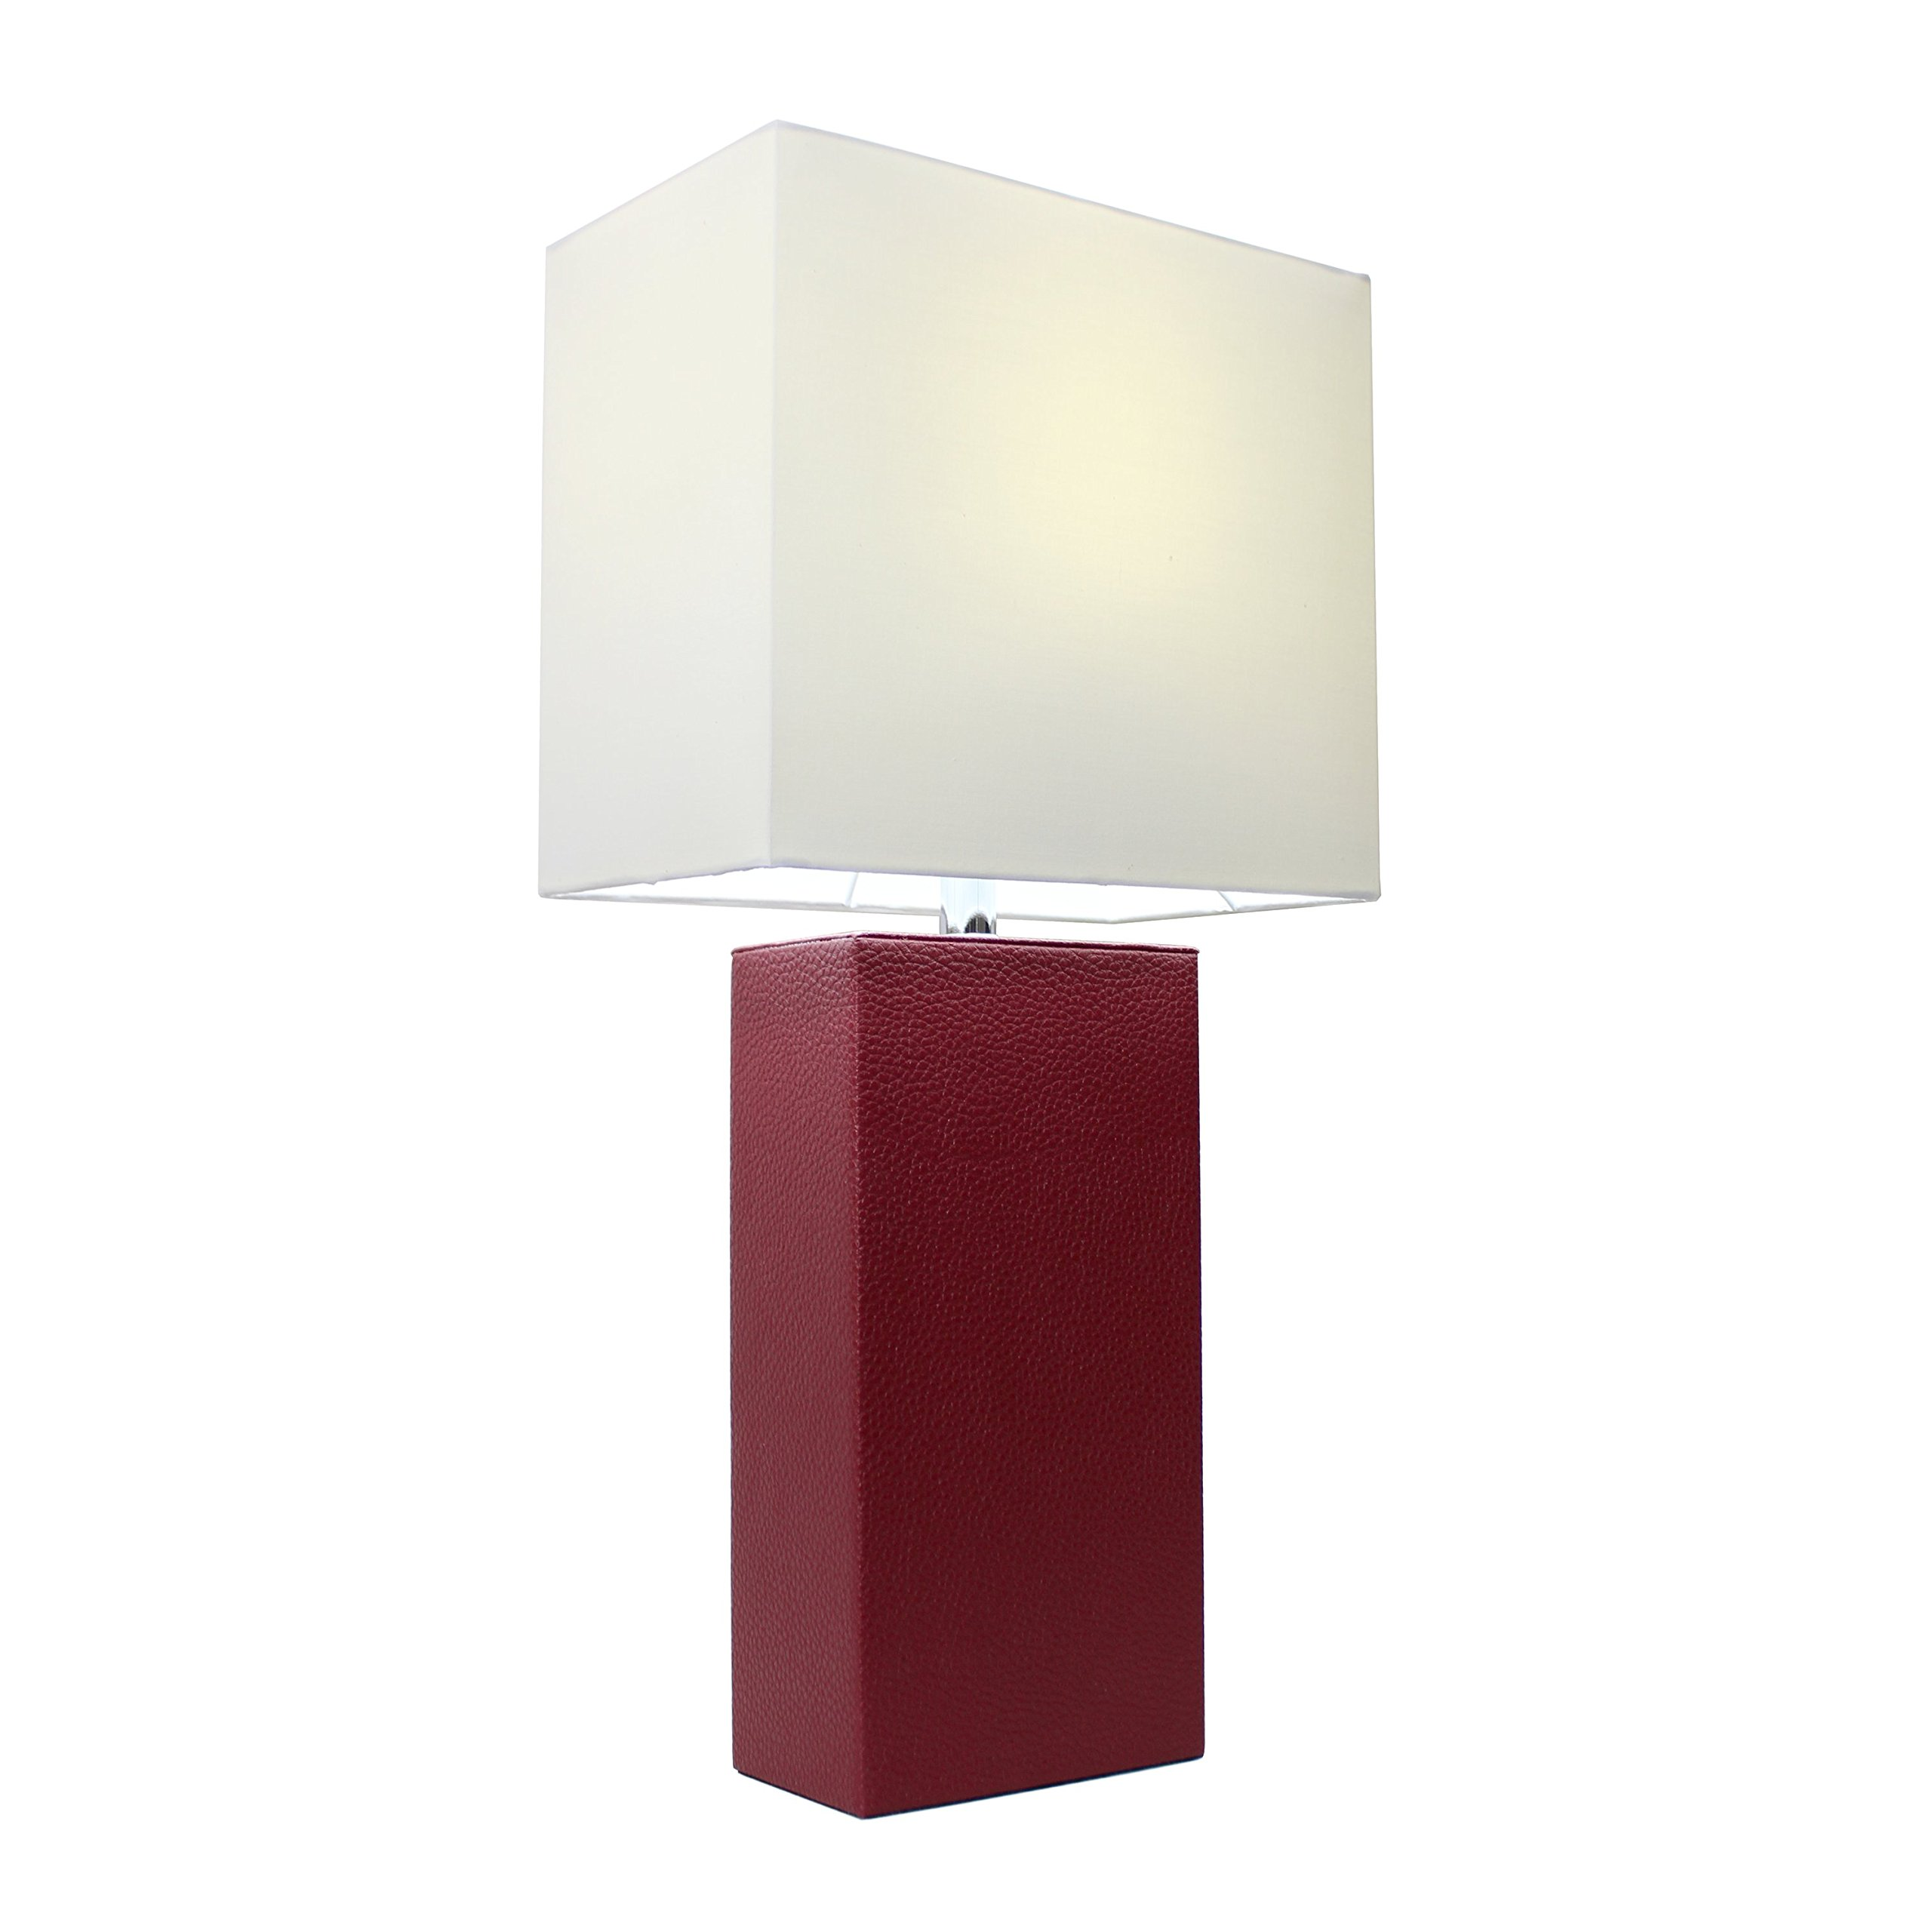 Elegant Designs LT1025-RED Modern Genuine Leather Table Lamp, 10.0'' x 6.0'' x 21.0'', Red